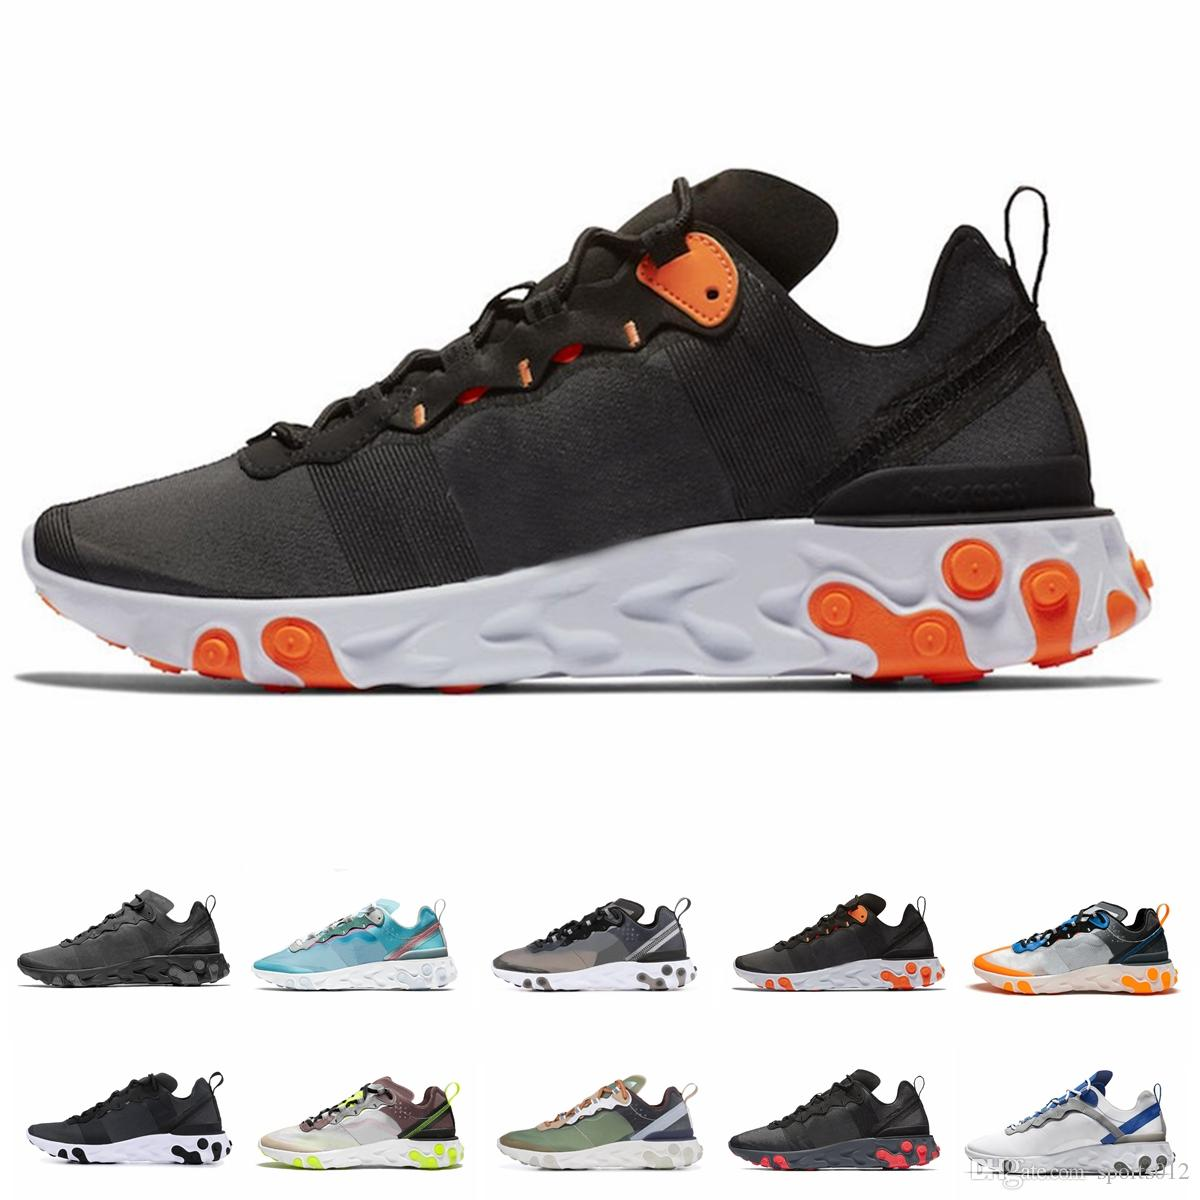 2019 react element 87 55 running shoes for men women Anthracite Light Bone triple black white RED ORBIT fashion mens trainers sports sneaker